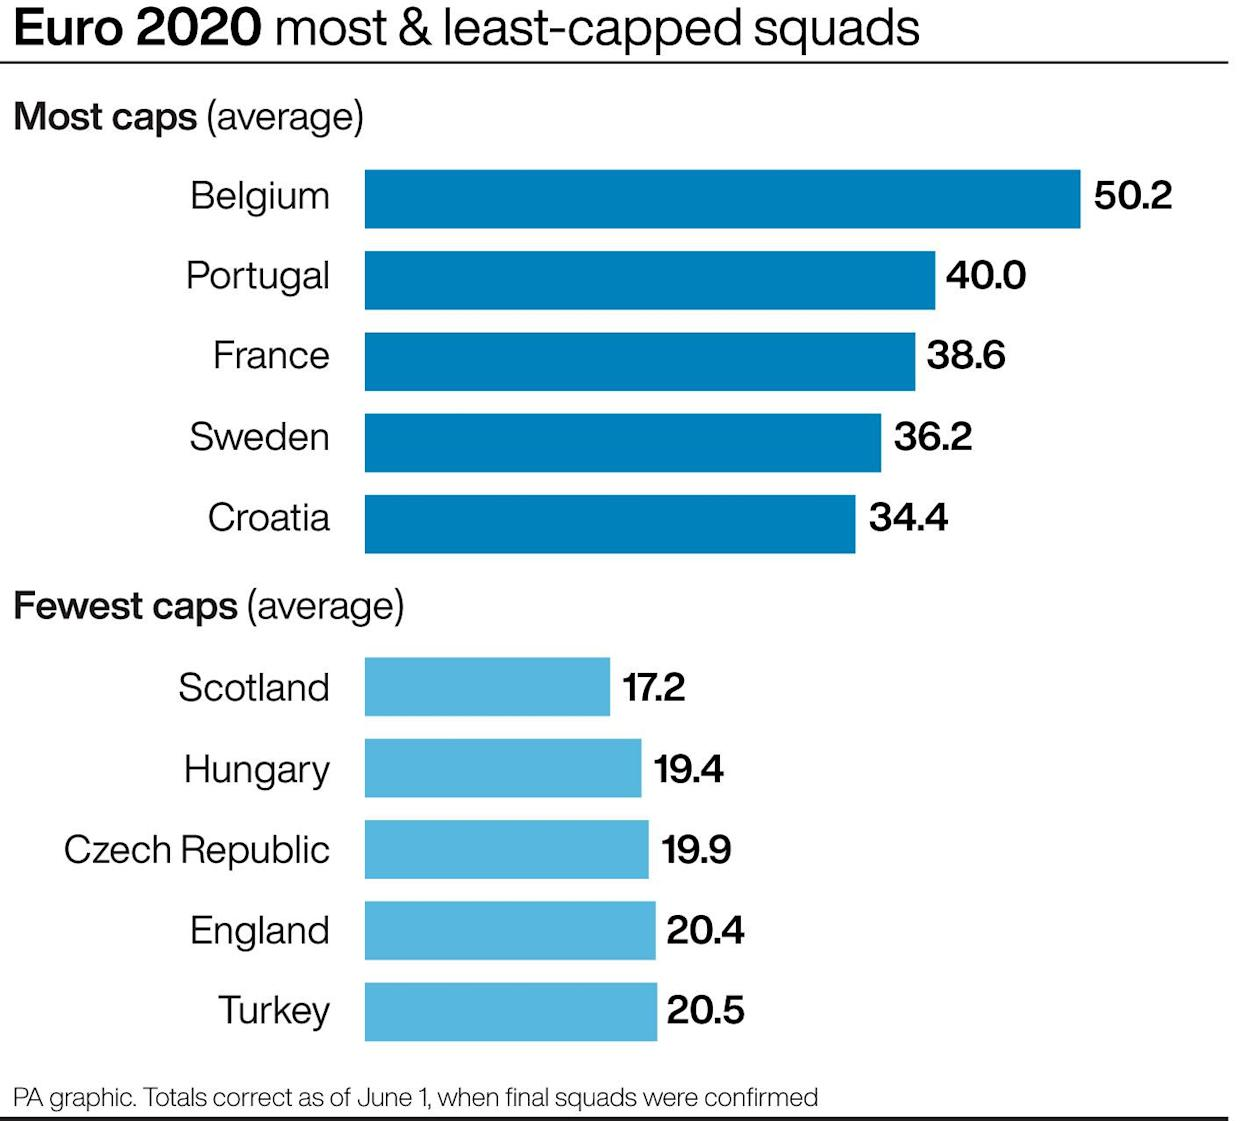 Euro 2020: Most and least-capped squads